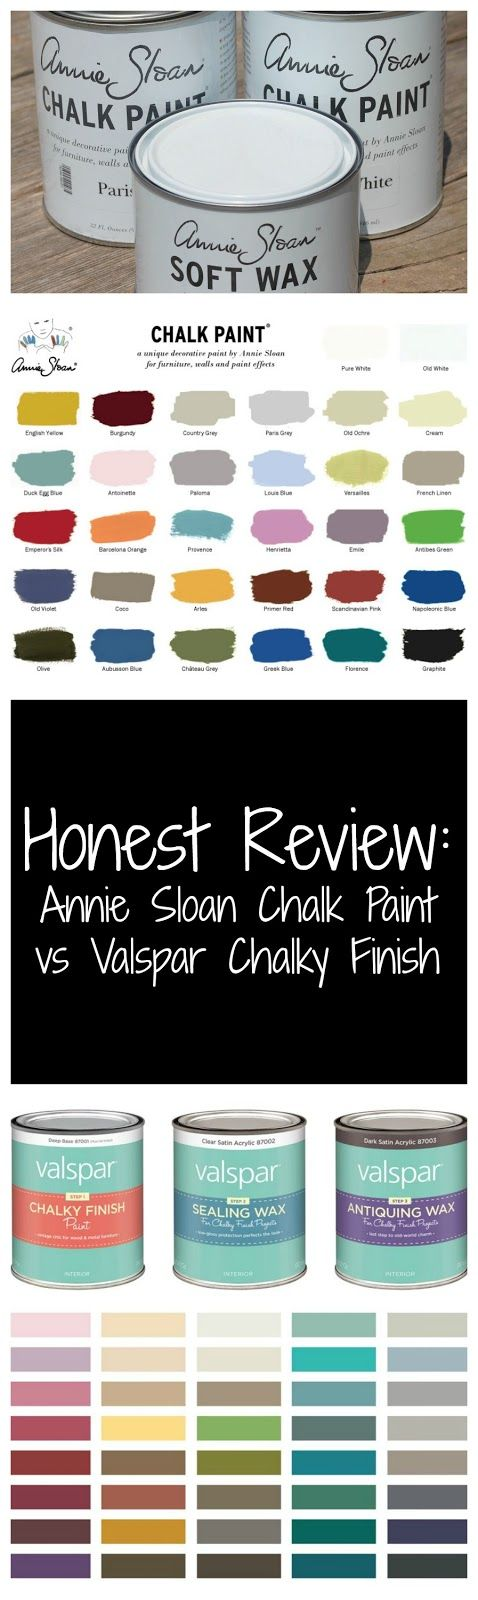 Loves The Find: Honest Review - Valspar Chalky Finish vs. Annie Sloan Chalk Paint